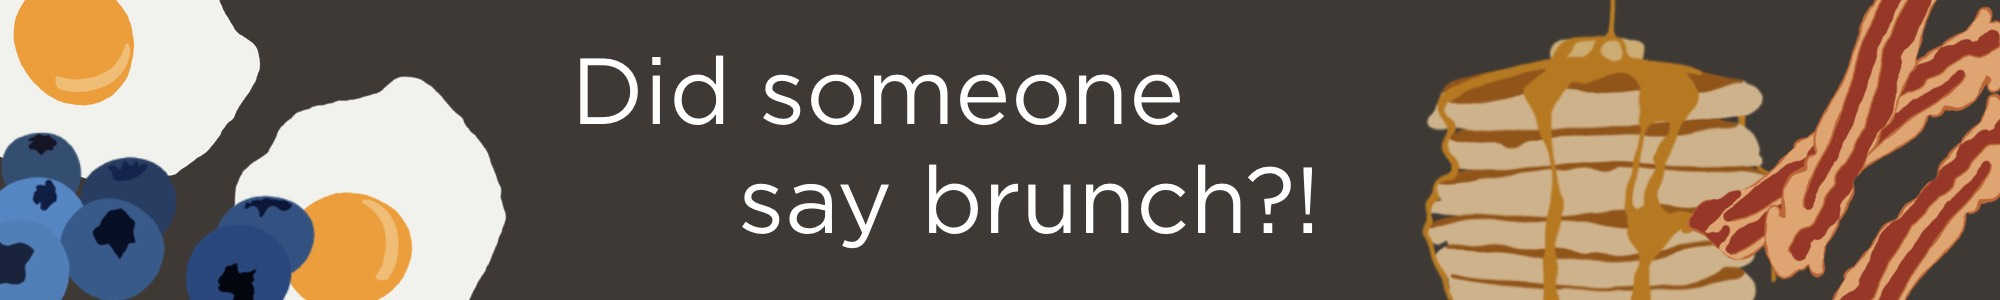 Spring Brunch Favorites - Blueberry Pancakes, Eggs, French Toast, Bacon